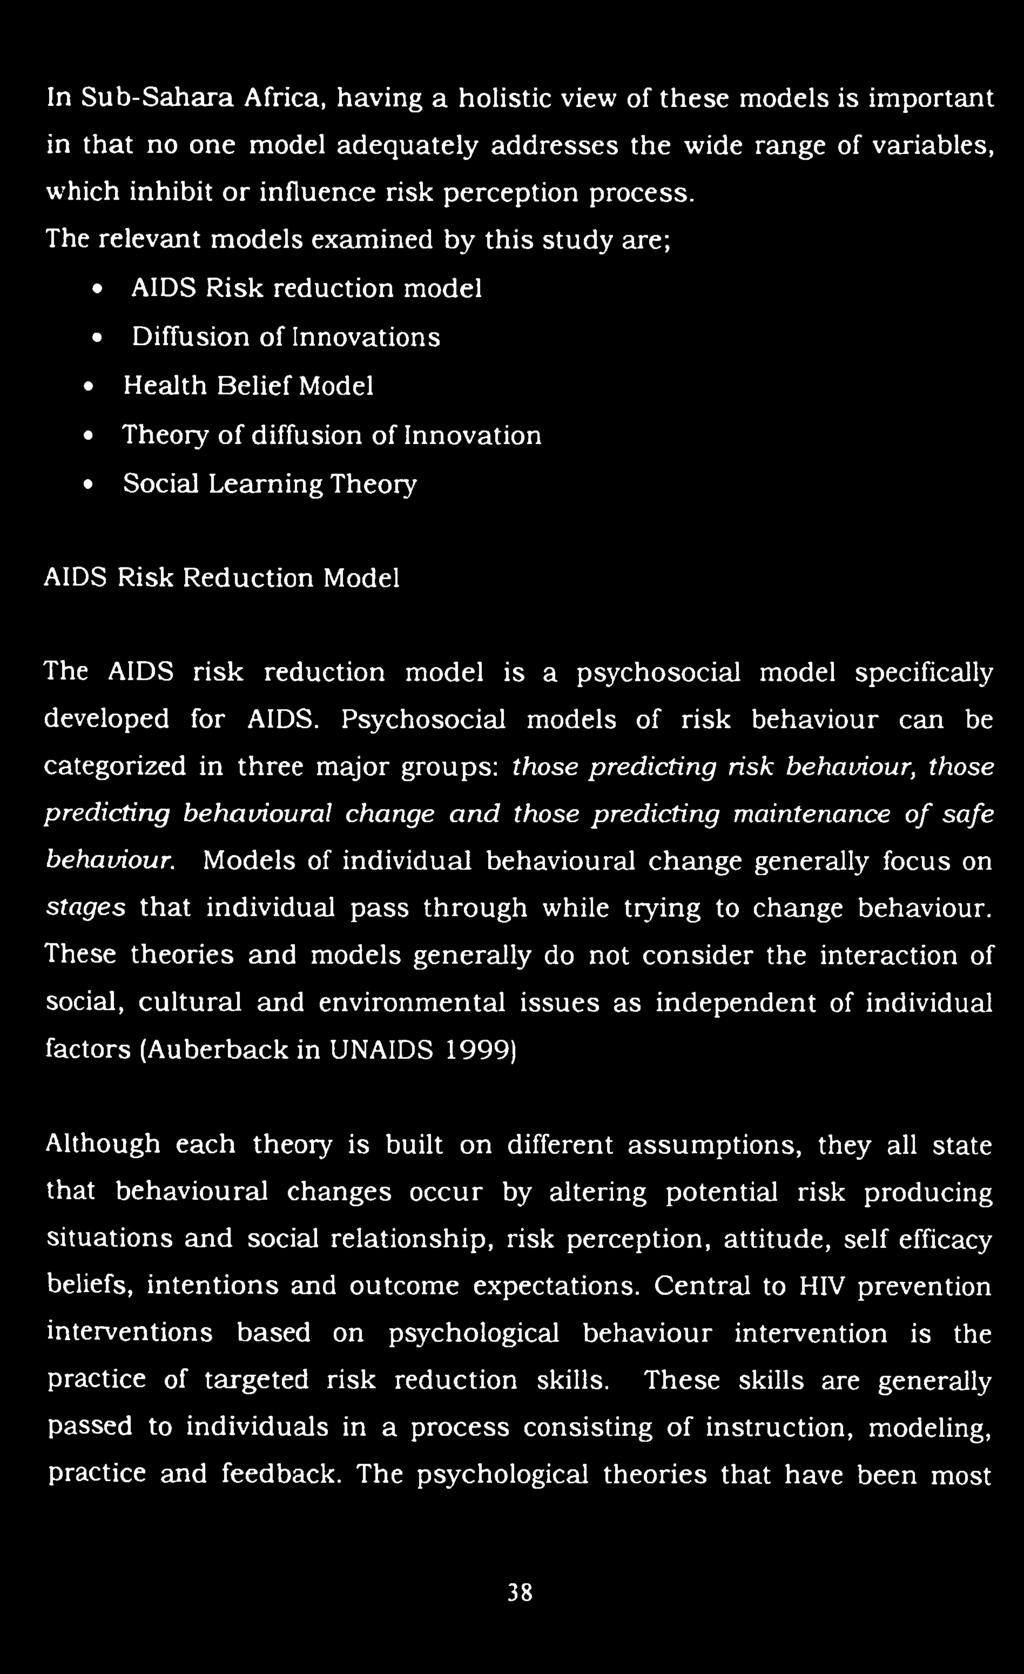 Model The AIDS risk reduction model is a psychosocial model specifically developed for AIDS.